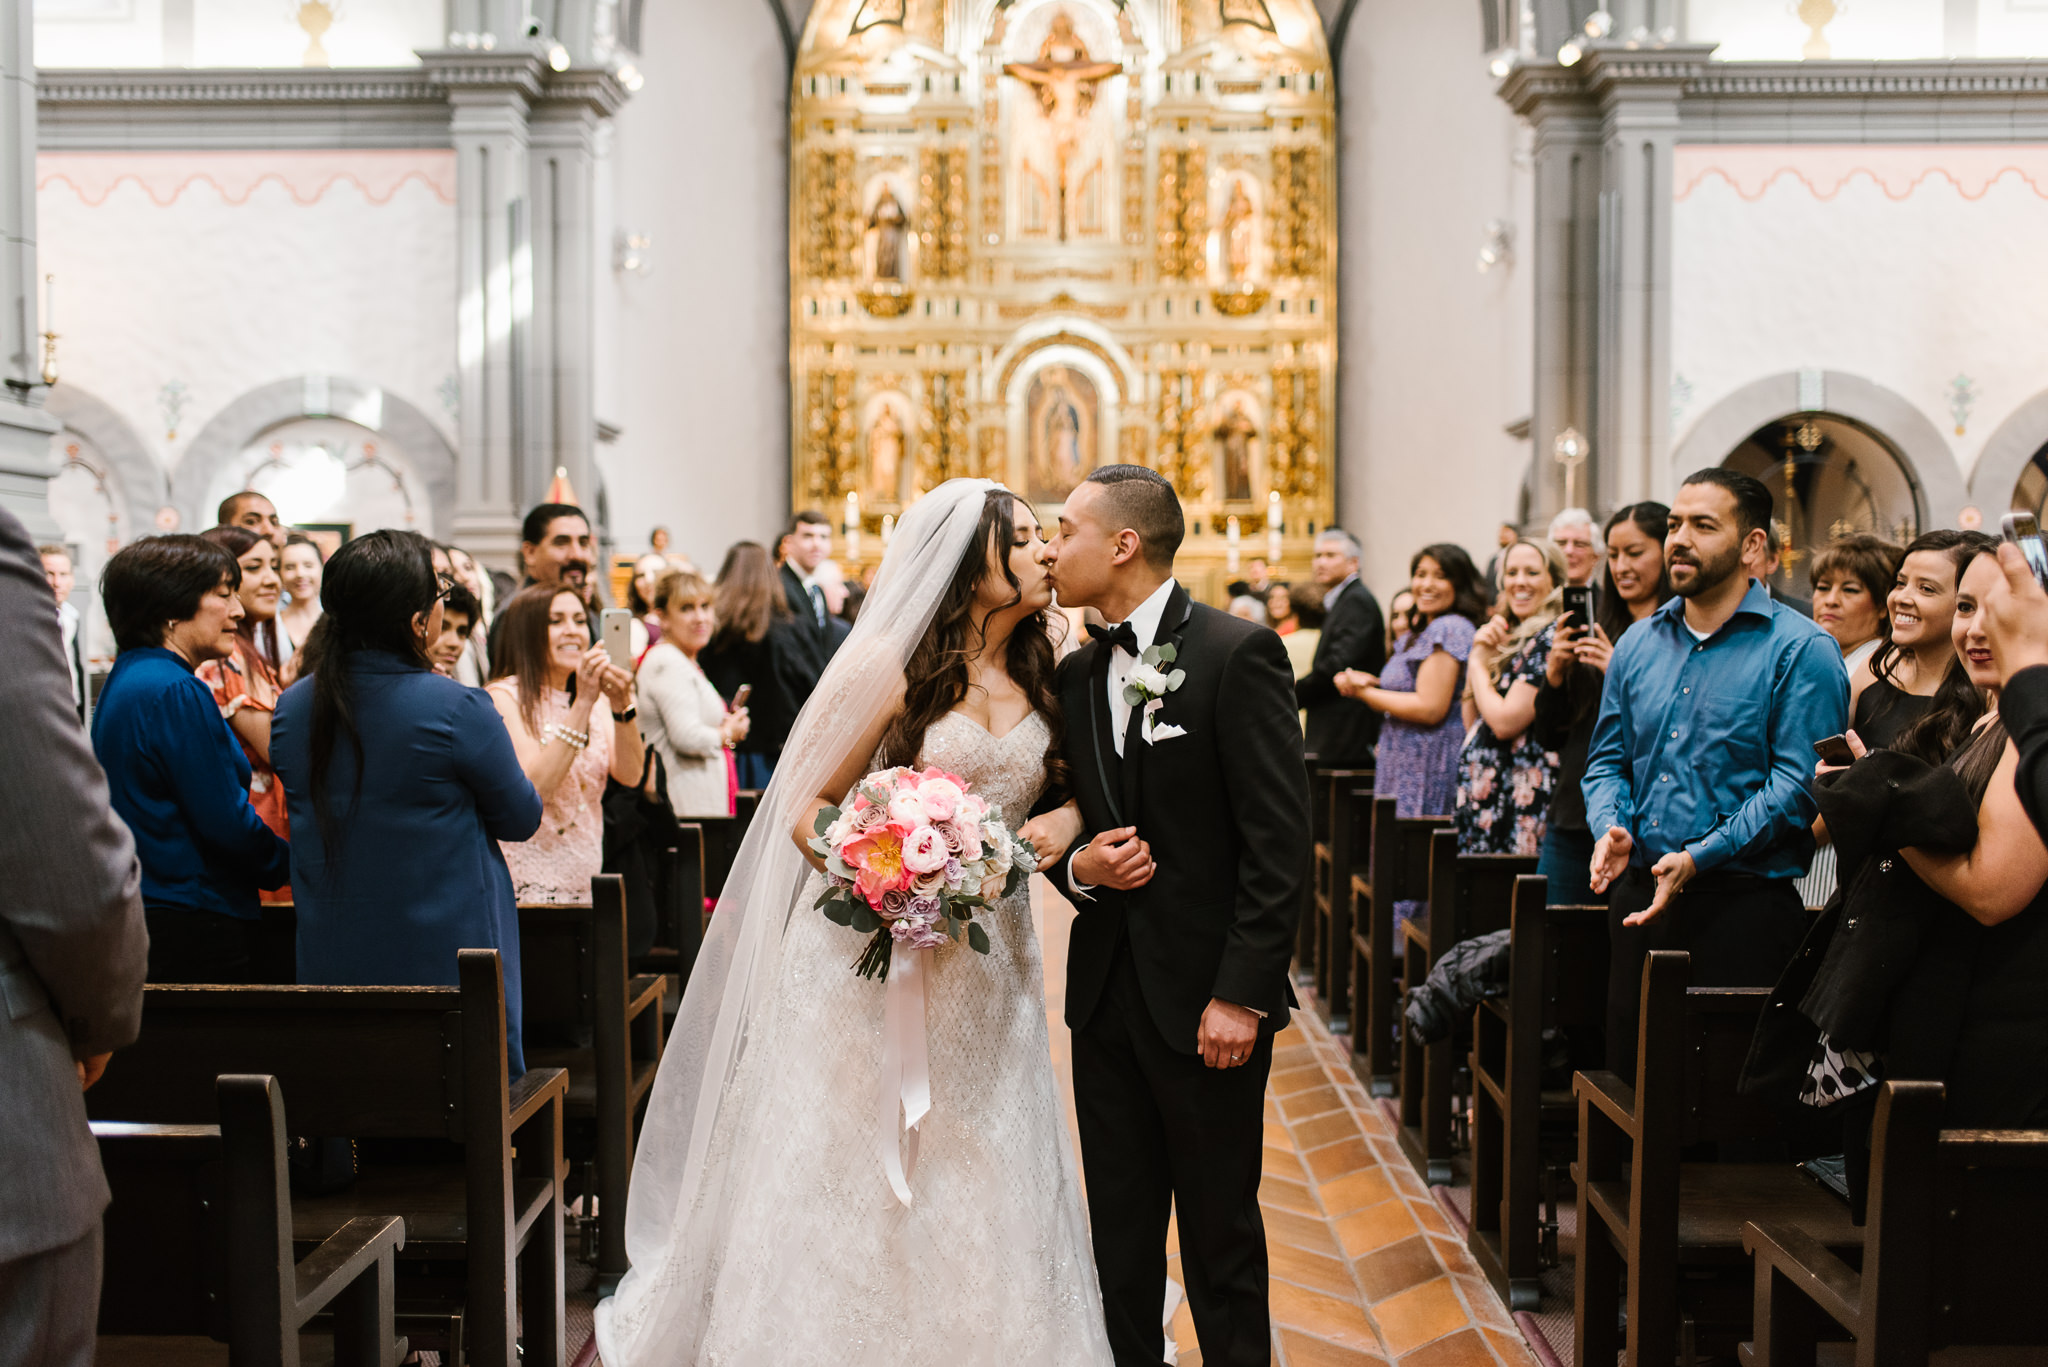 2019-04-05_Brittany_and_Nick_-_Married_-_San_Juan_Capistrano-77.jpg